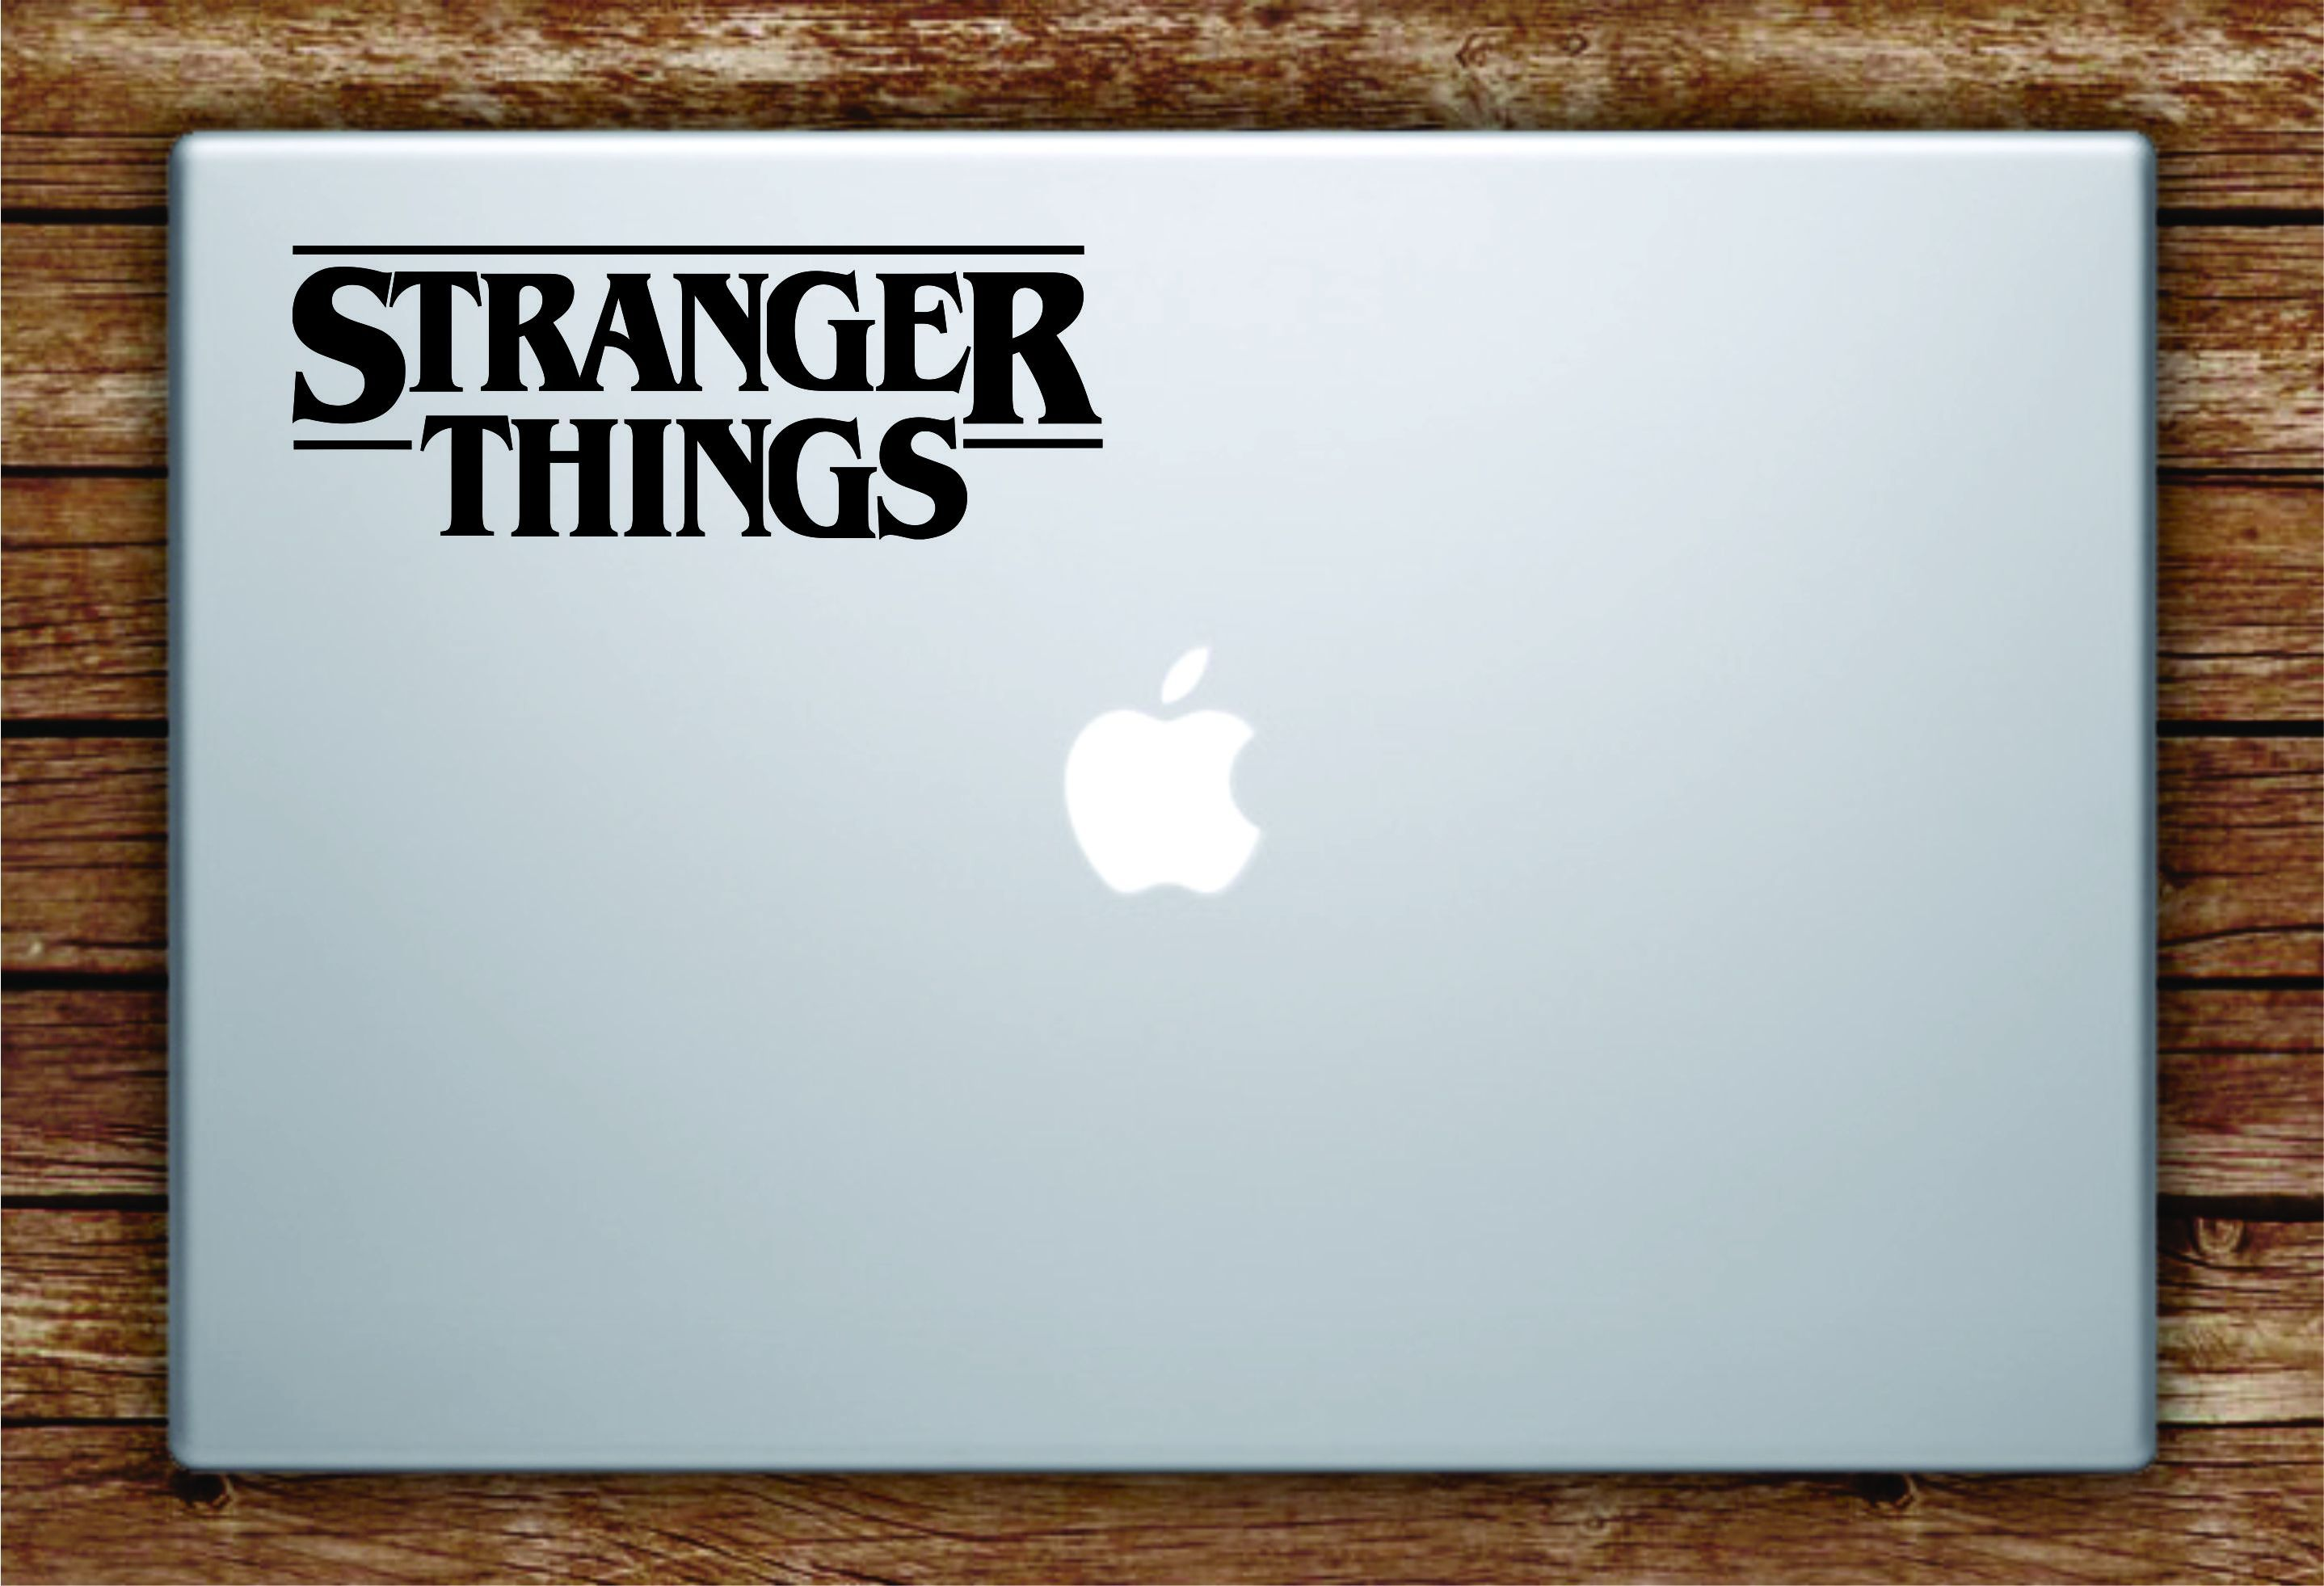 Stranger things logo laptop apple macbook quote wall decal